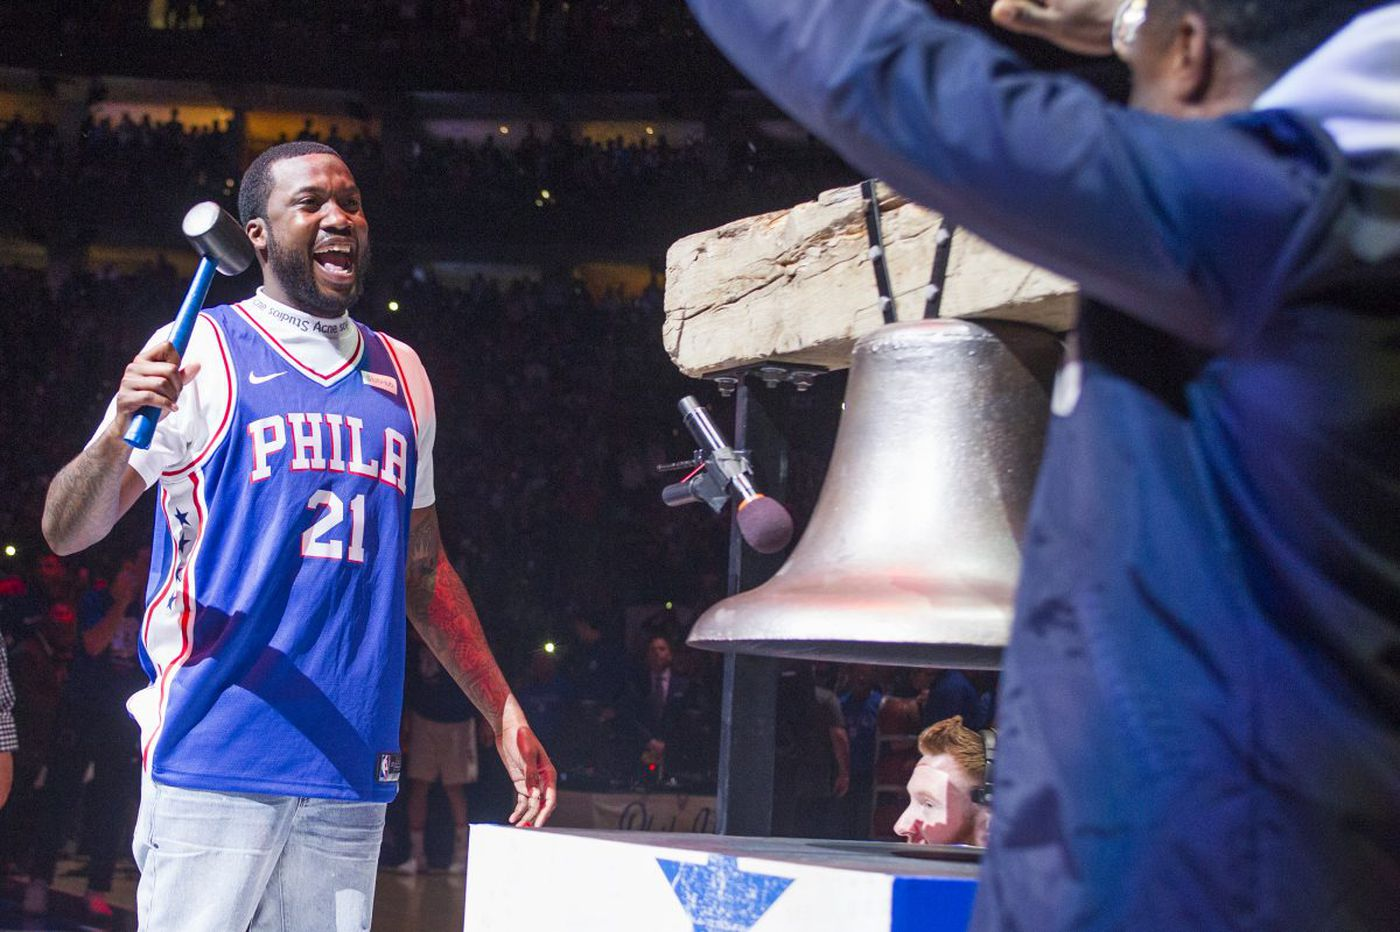 Meek Mill fires up Sixers fans during playoff victory over Heat